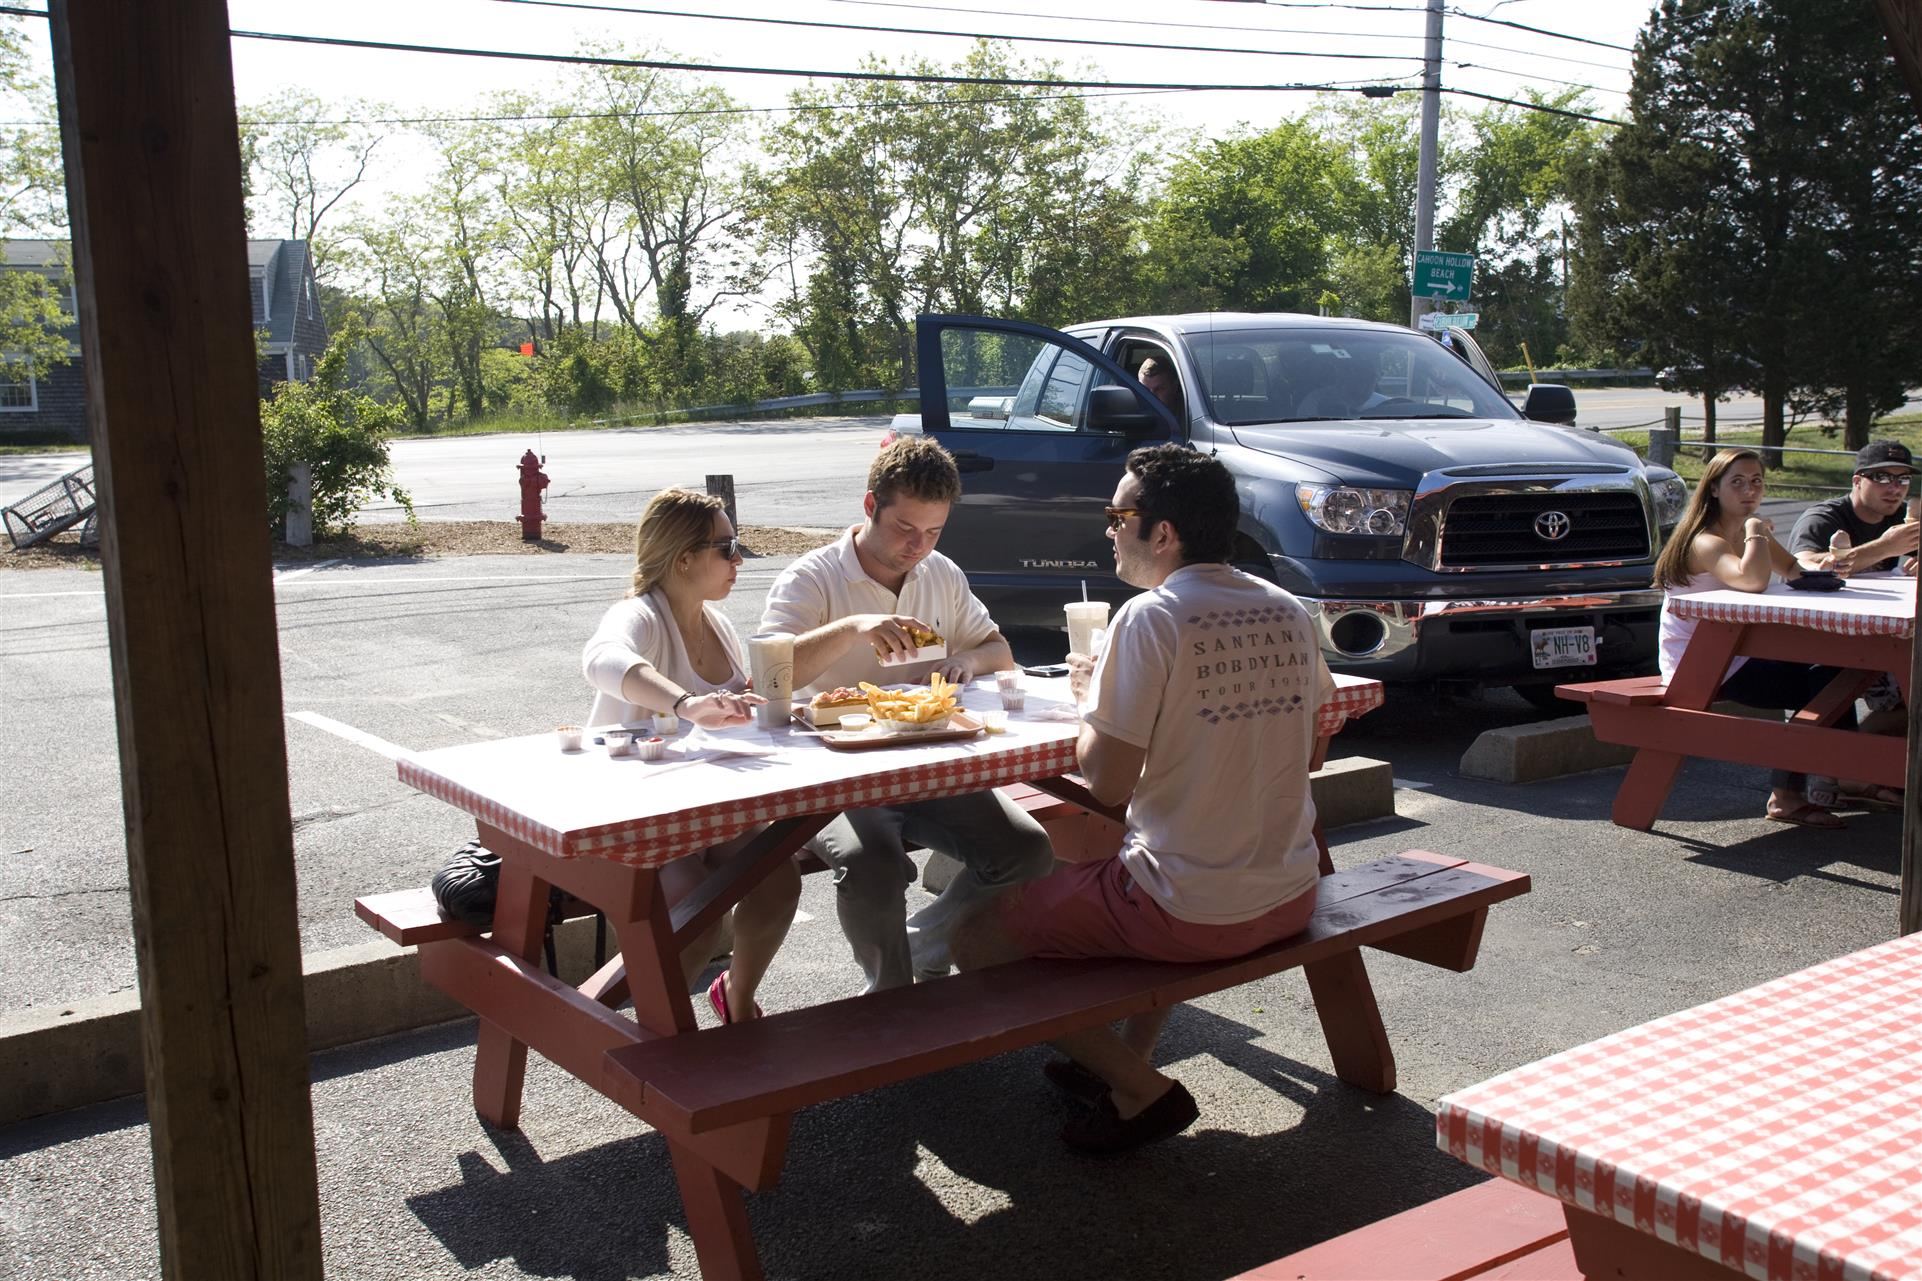 three people sitting at a picnic table